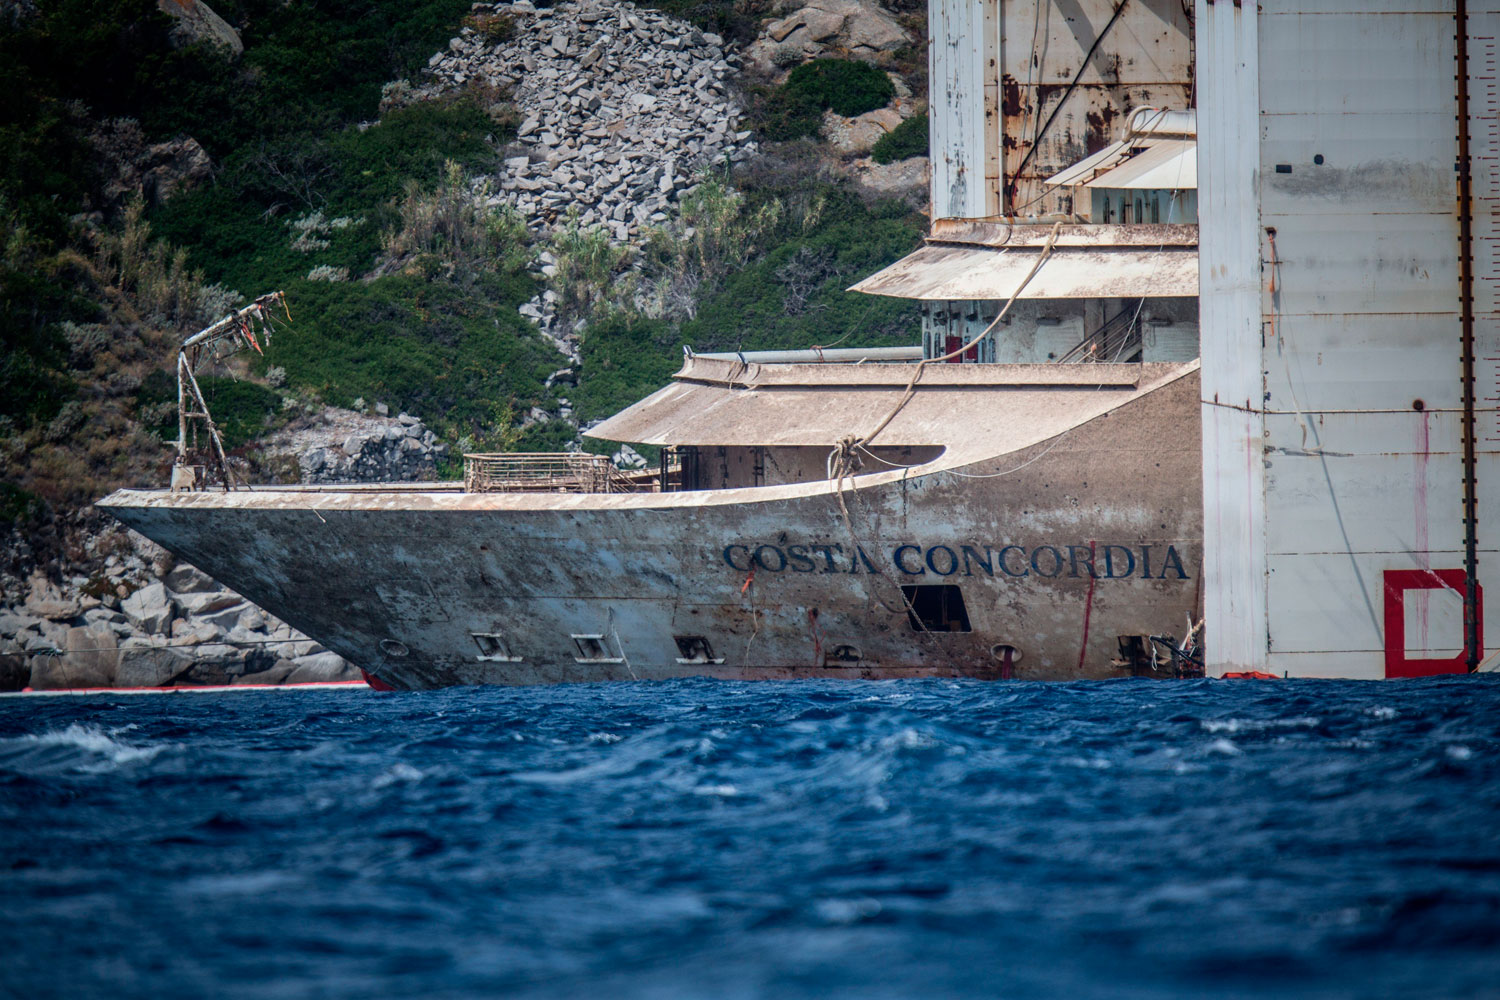 Costa Concordia re-float operation close to the end  on February 27, 2014 in Giglio Porto, Italy. The floatation and and salvage costs will exceed $2 billion.